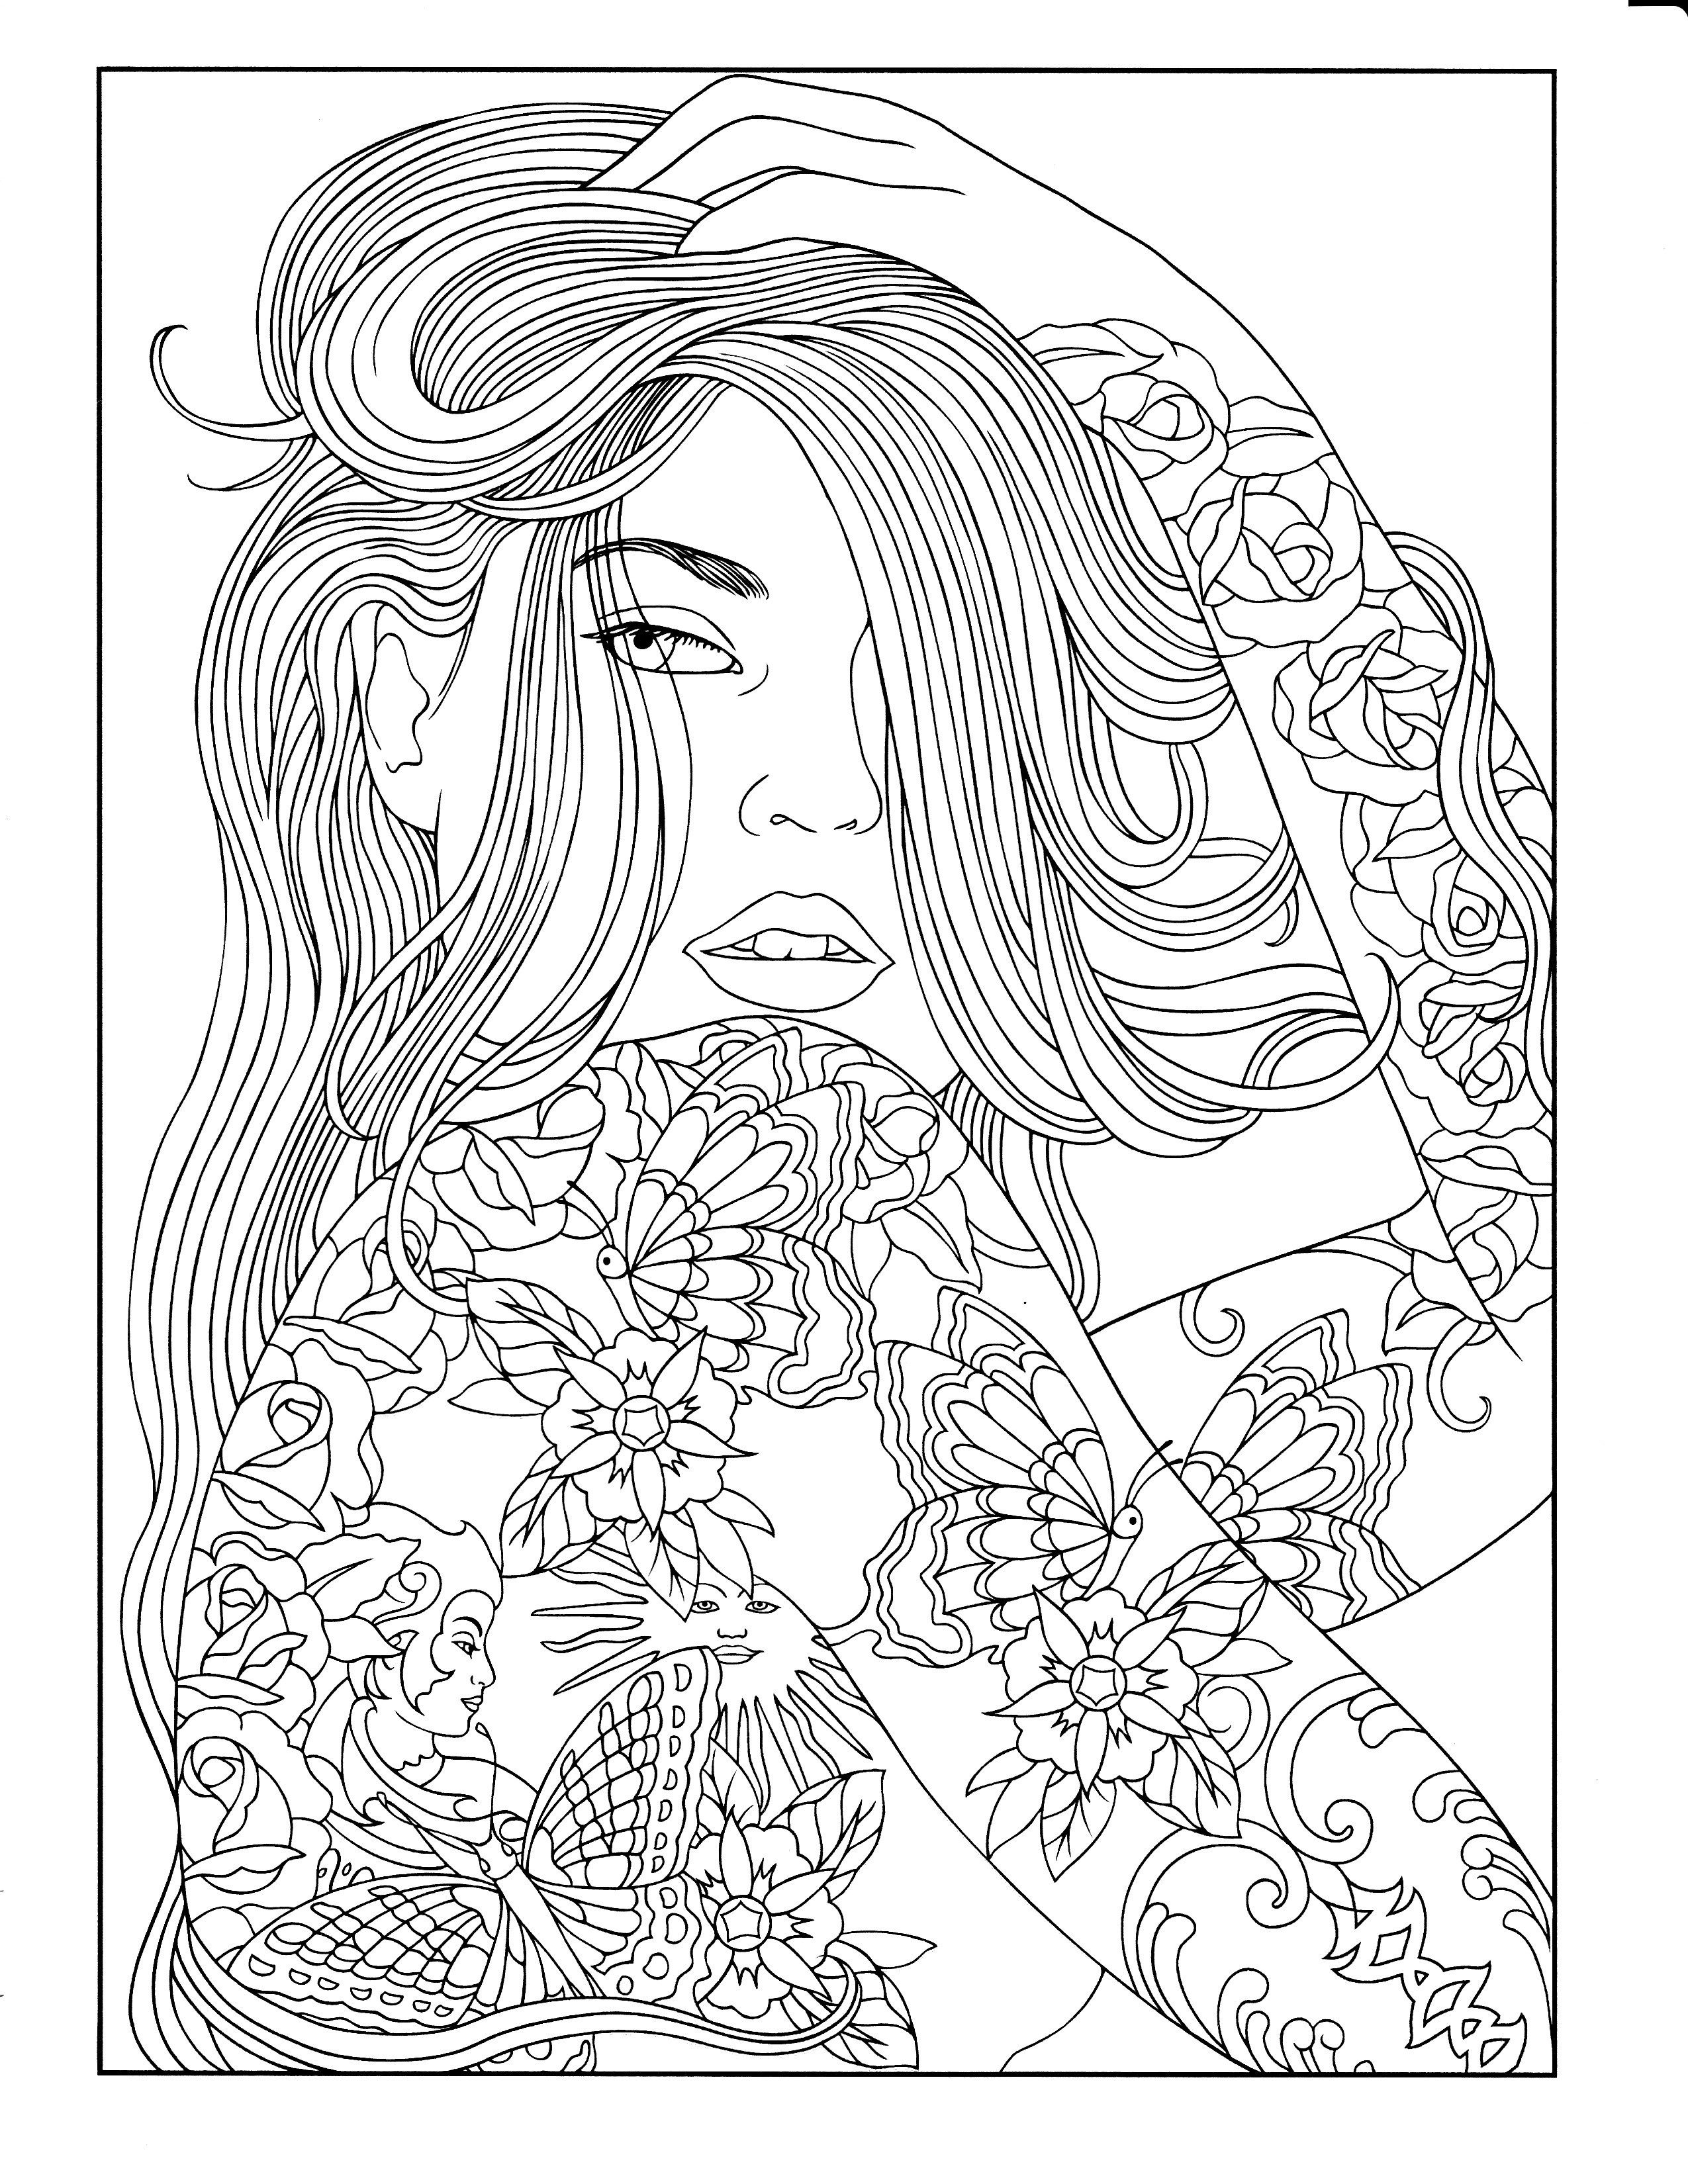 Printable Coloring Page  People coloring pages, Animal coloring